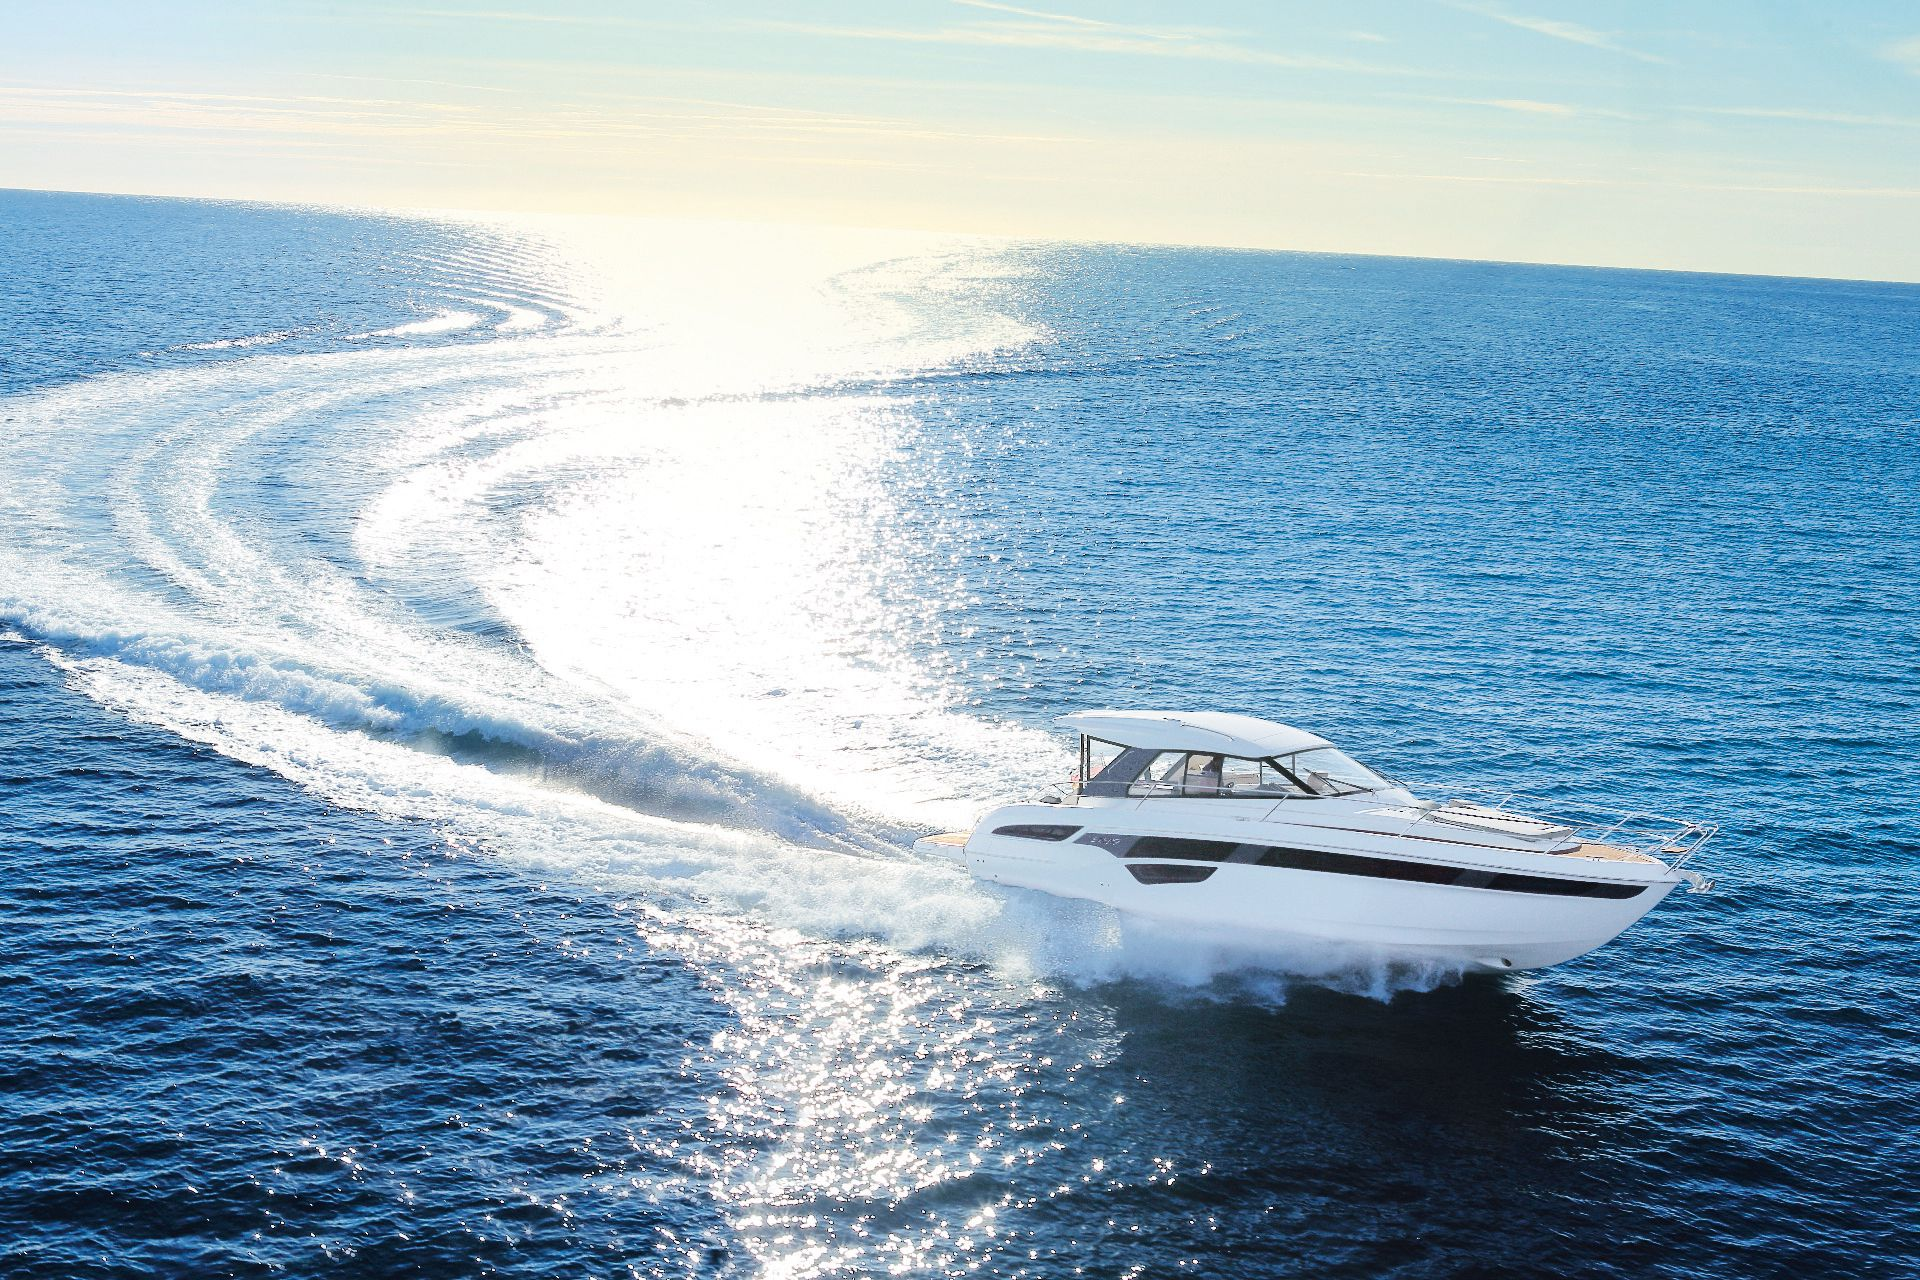 book motor yacht online, motor yacht charter, motor boating, motor yacht